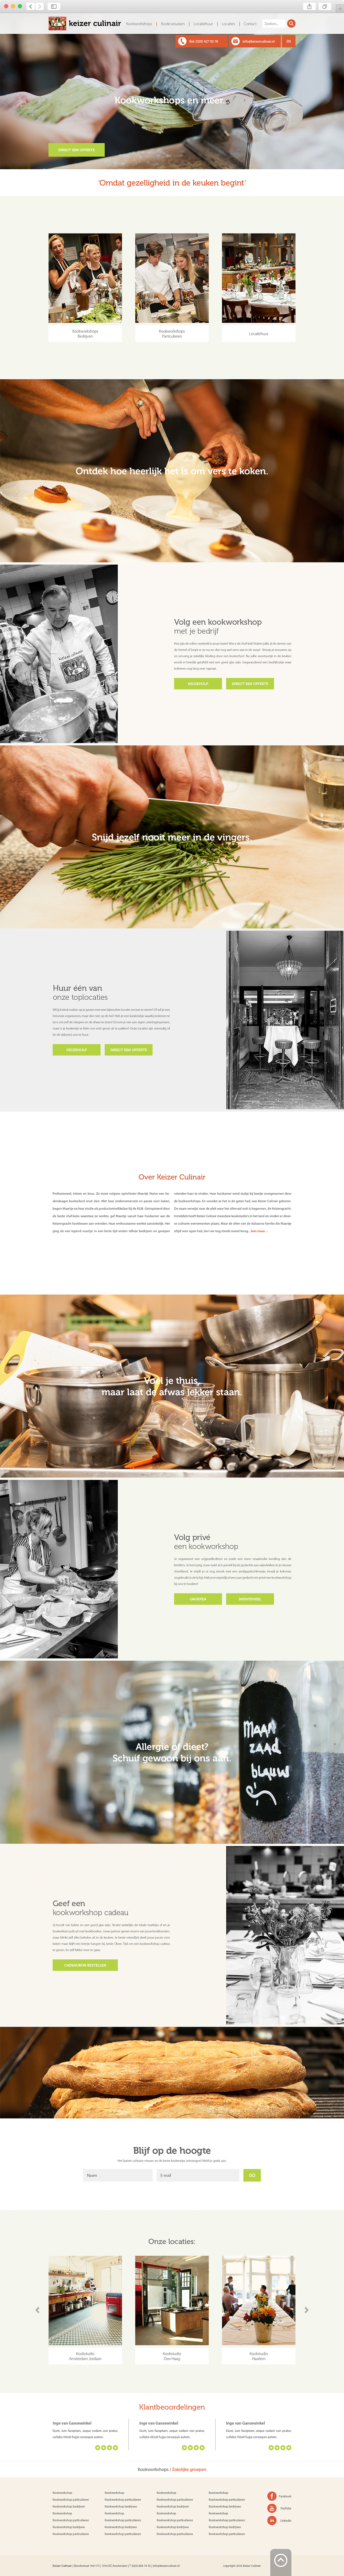 Keizer_Culinair_Homepage_Green_Creatives